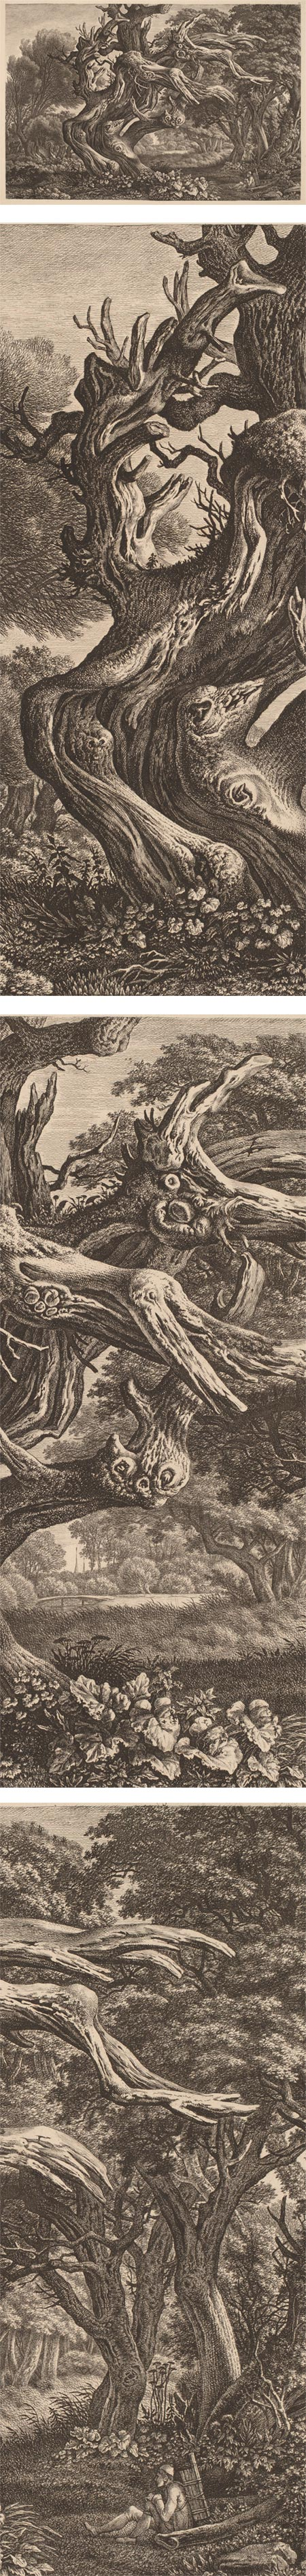 Dead Oak Tree, Carl Wihelm Kolbe, etching